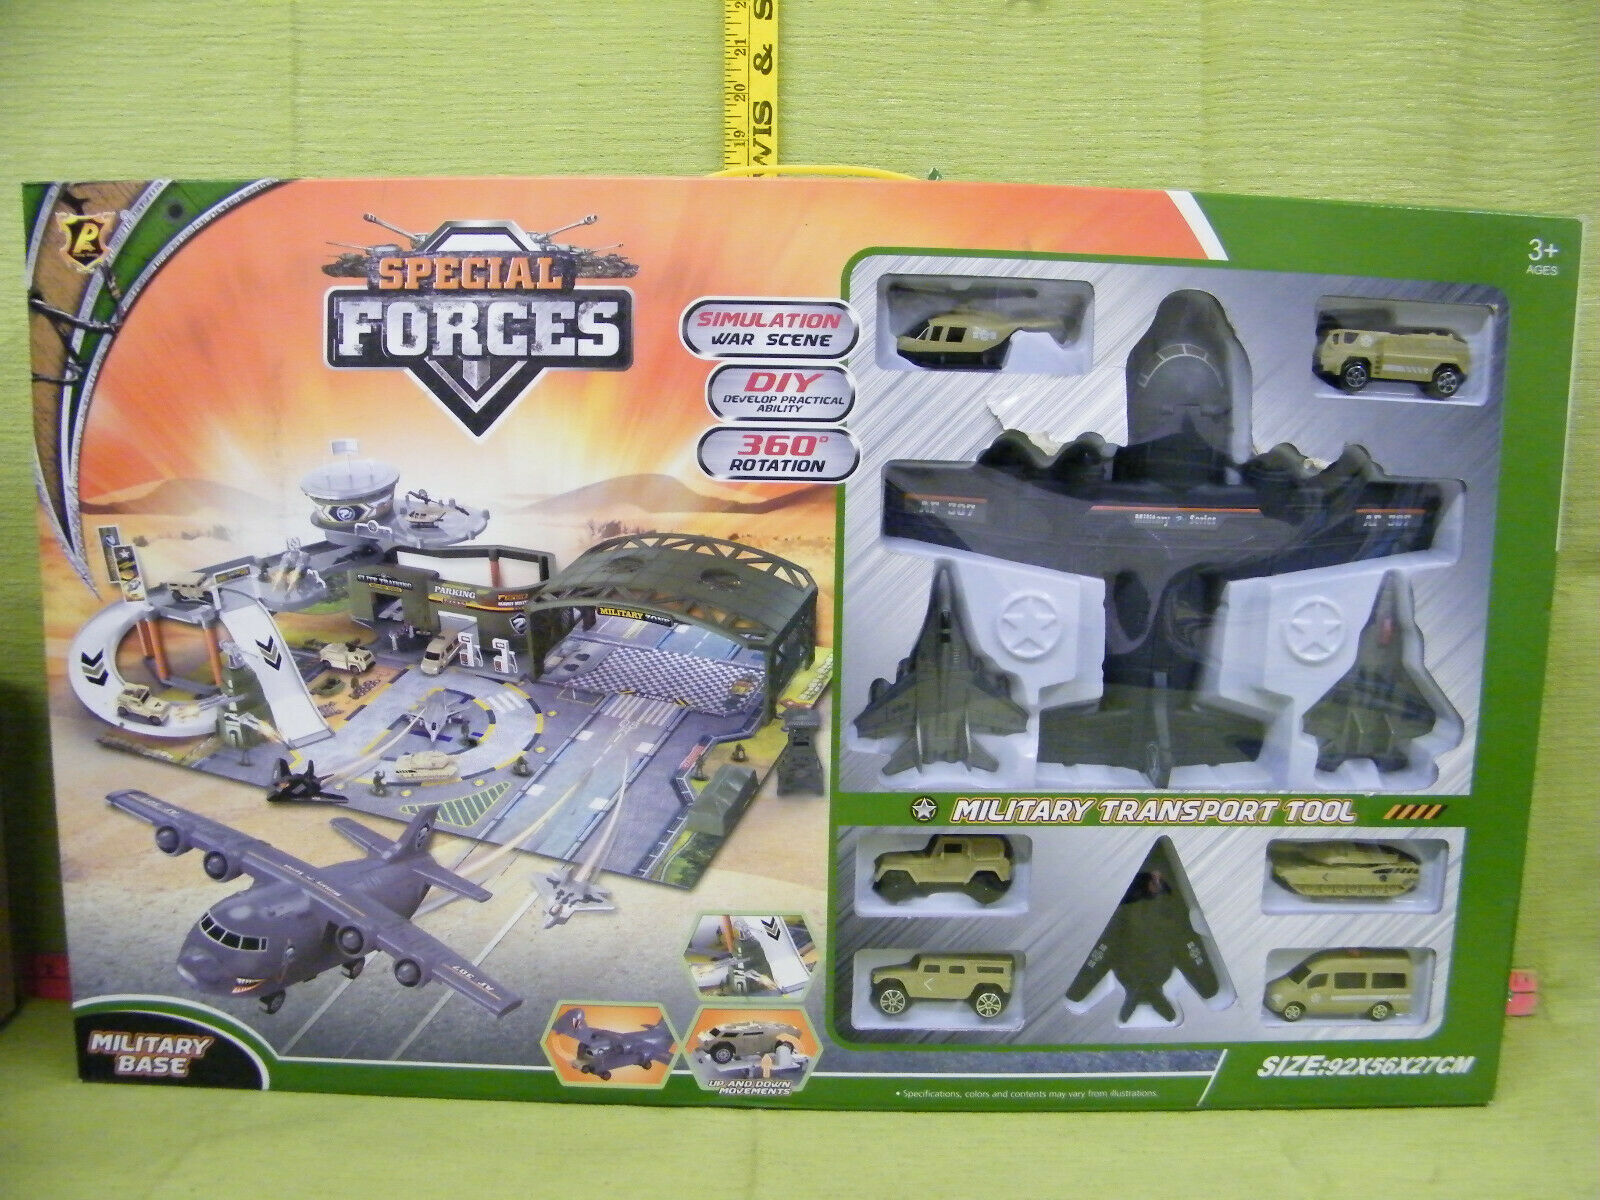 Peng Rong Special Forces Military Base, Dimensione 92x56x27cm, Military Transport Tool